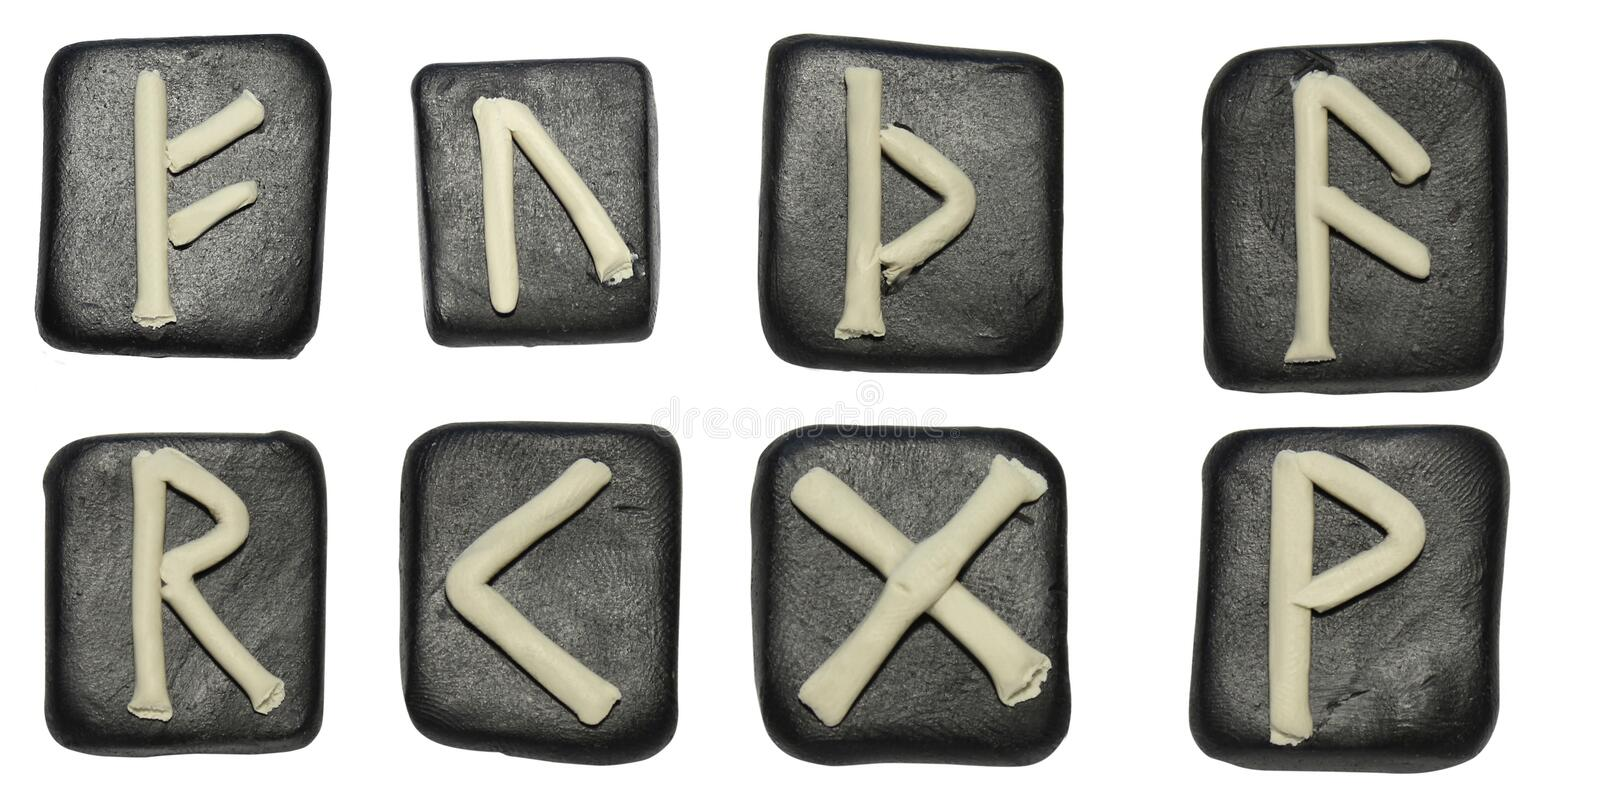 Tiles with runes royalty free stock image